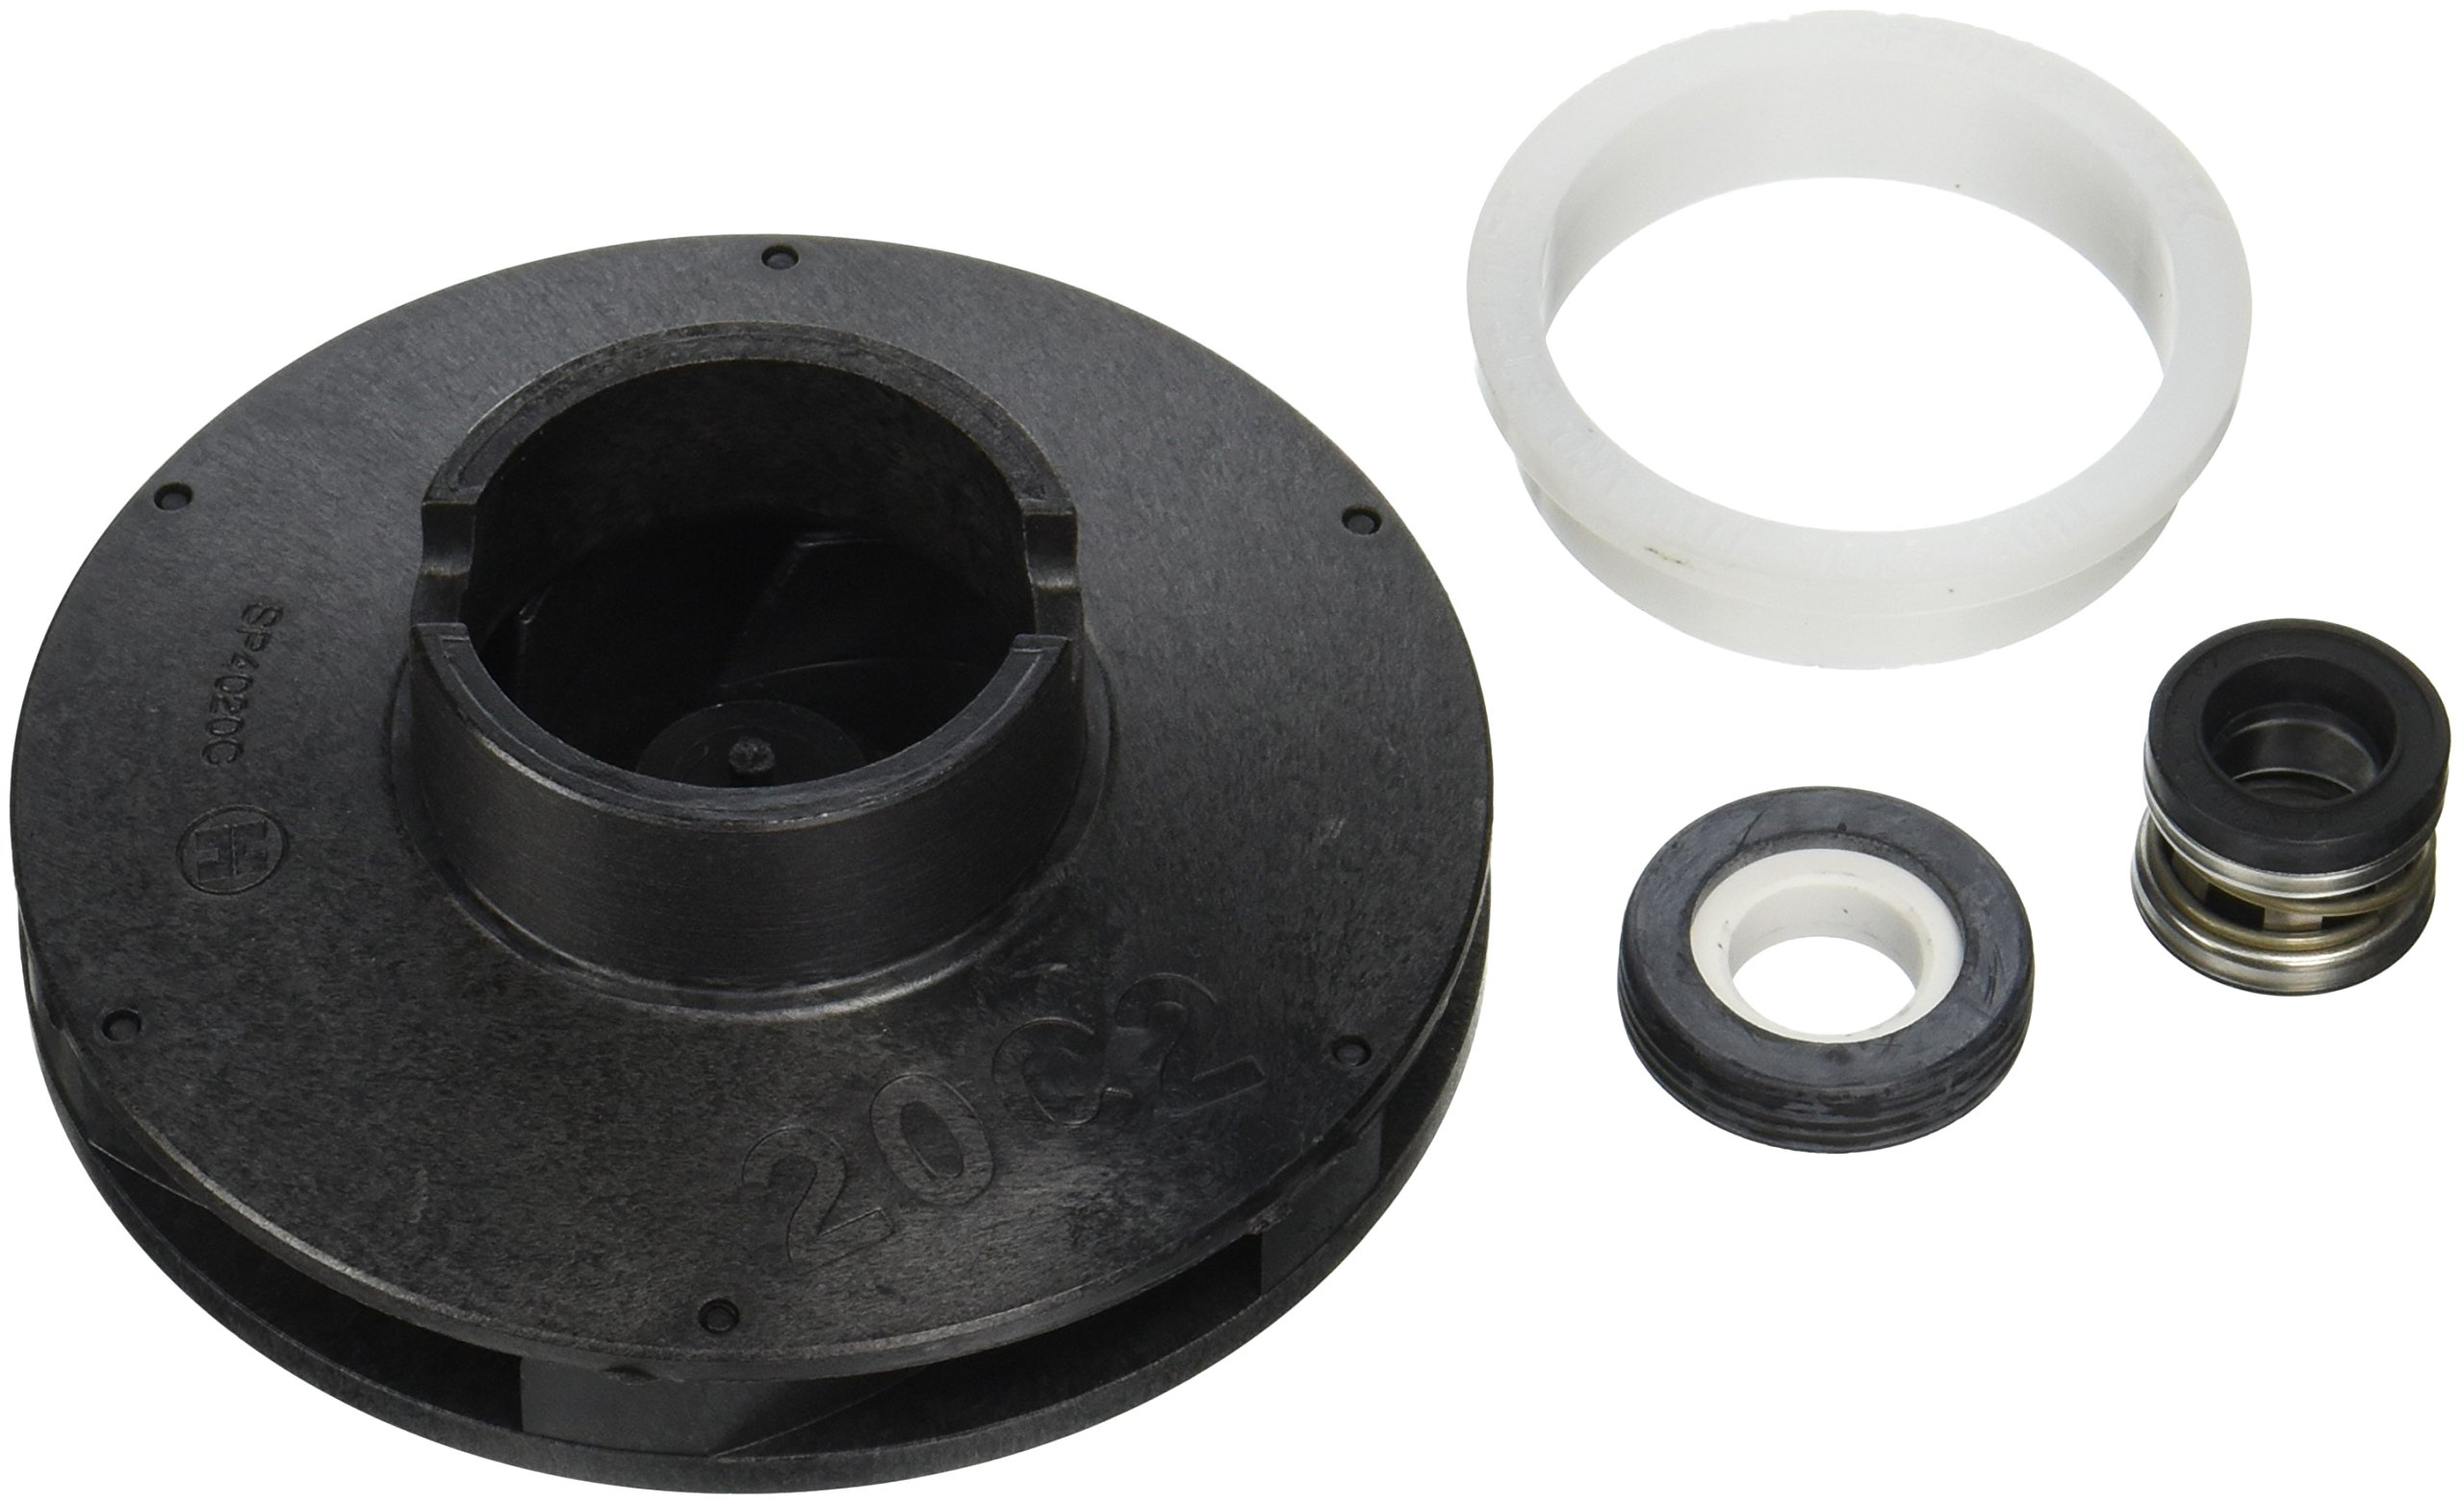 Hayward SPX4020CKIT 2-Horsepower Impeller Assembly with Ring and Seal Replacement Kit for Select Hayward Pump